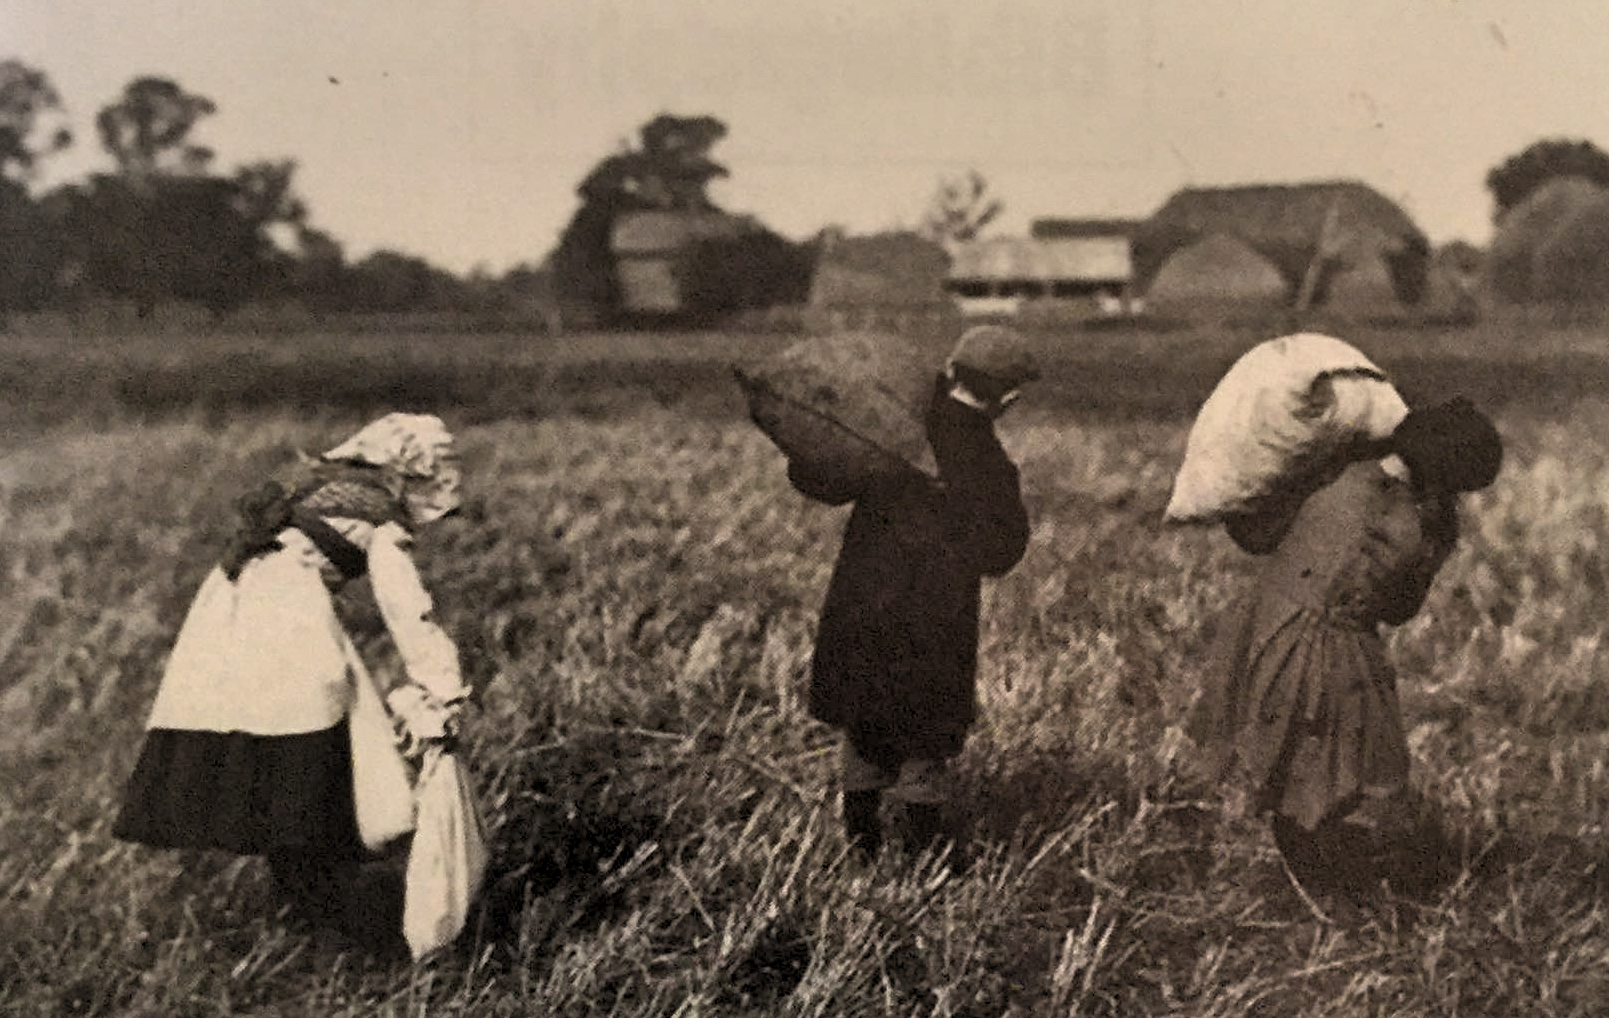 Gleaning in Pinchbeck